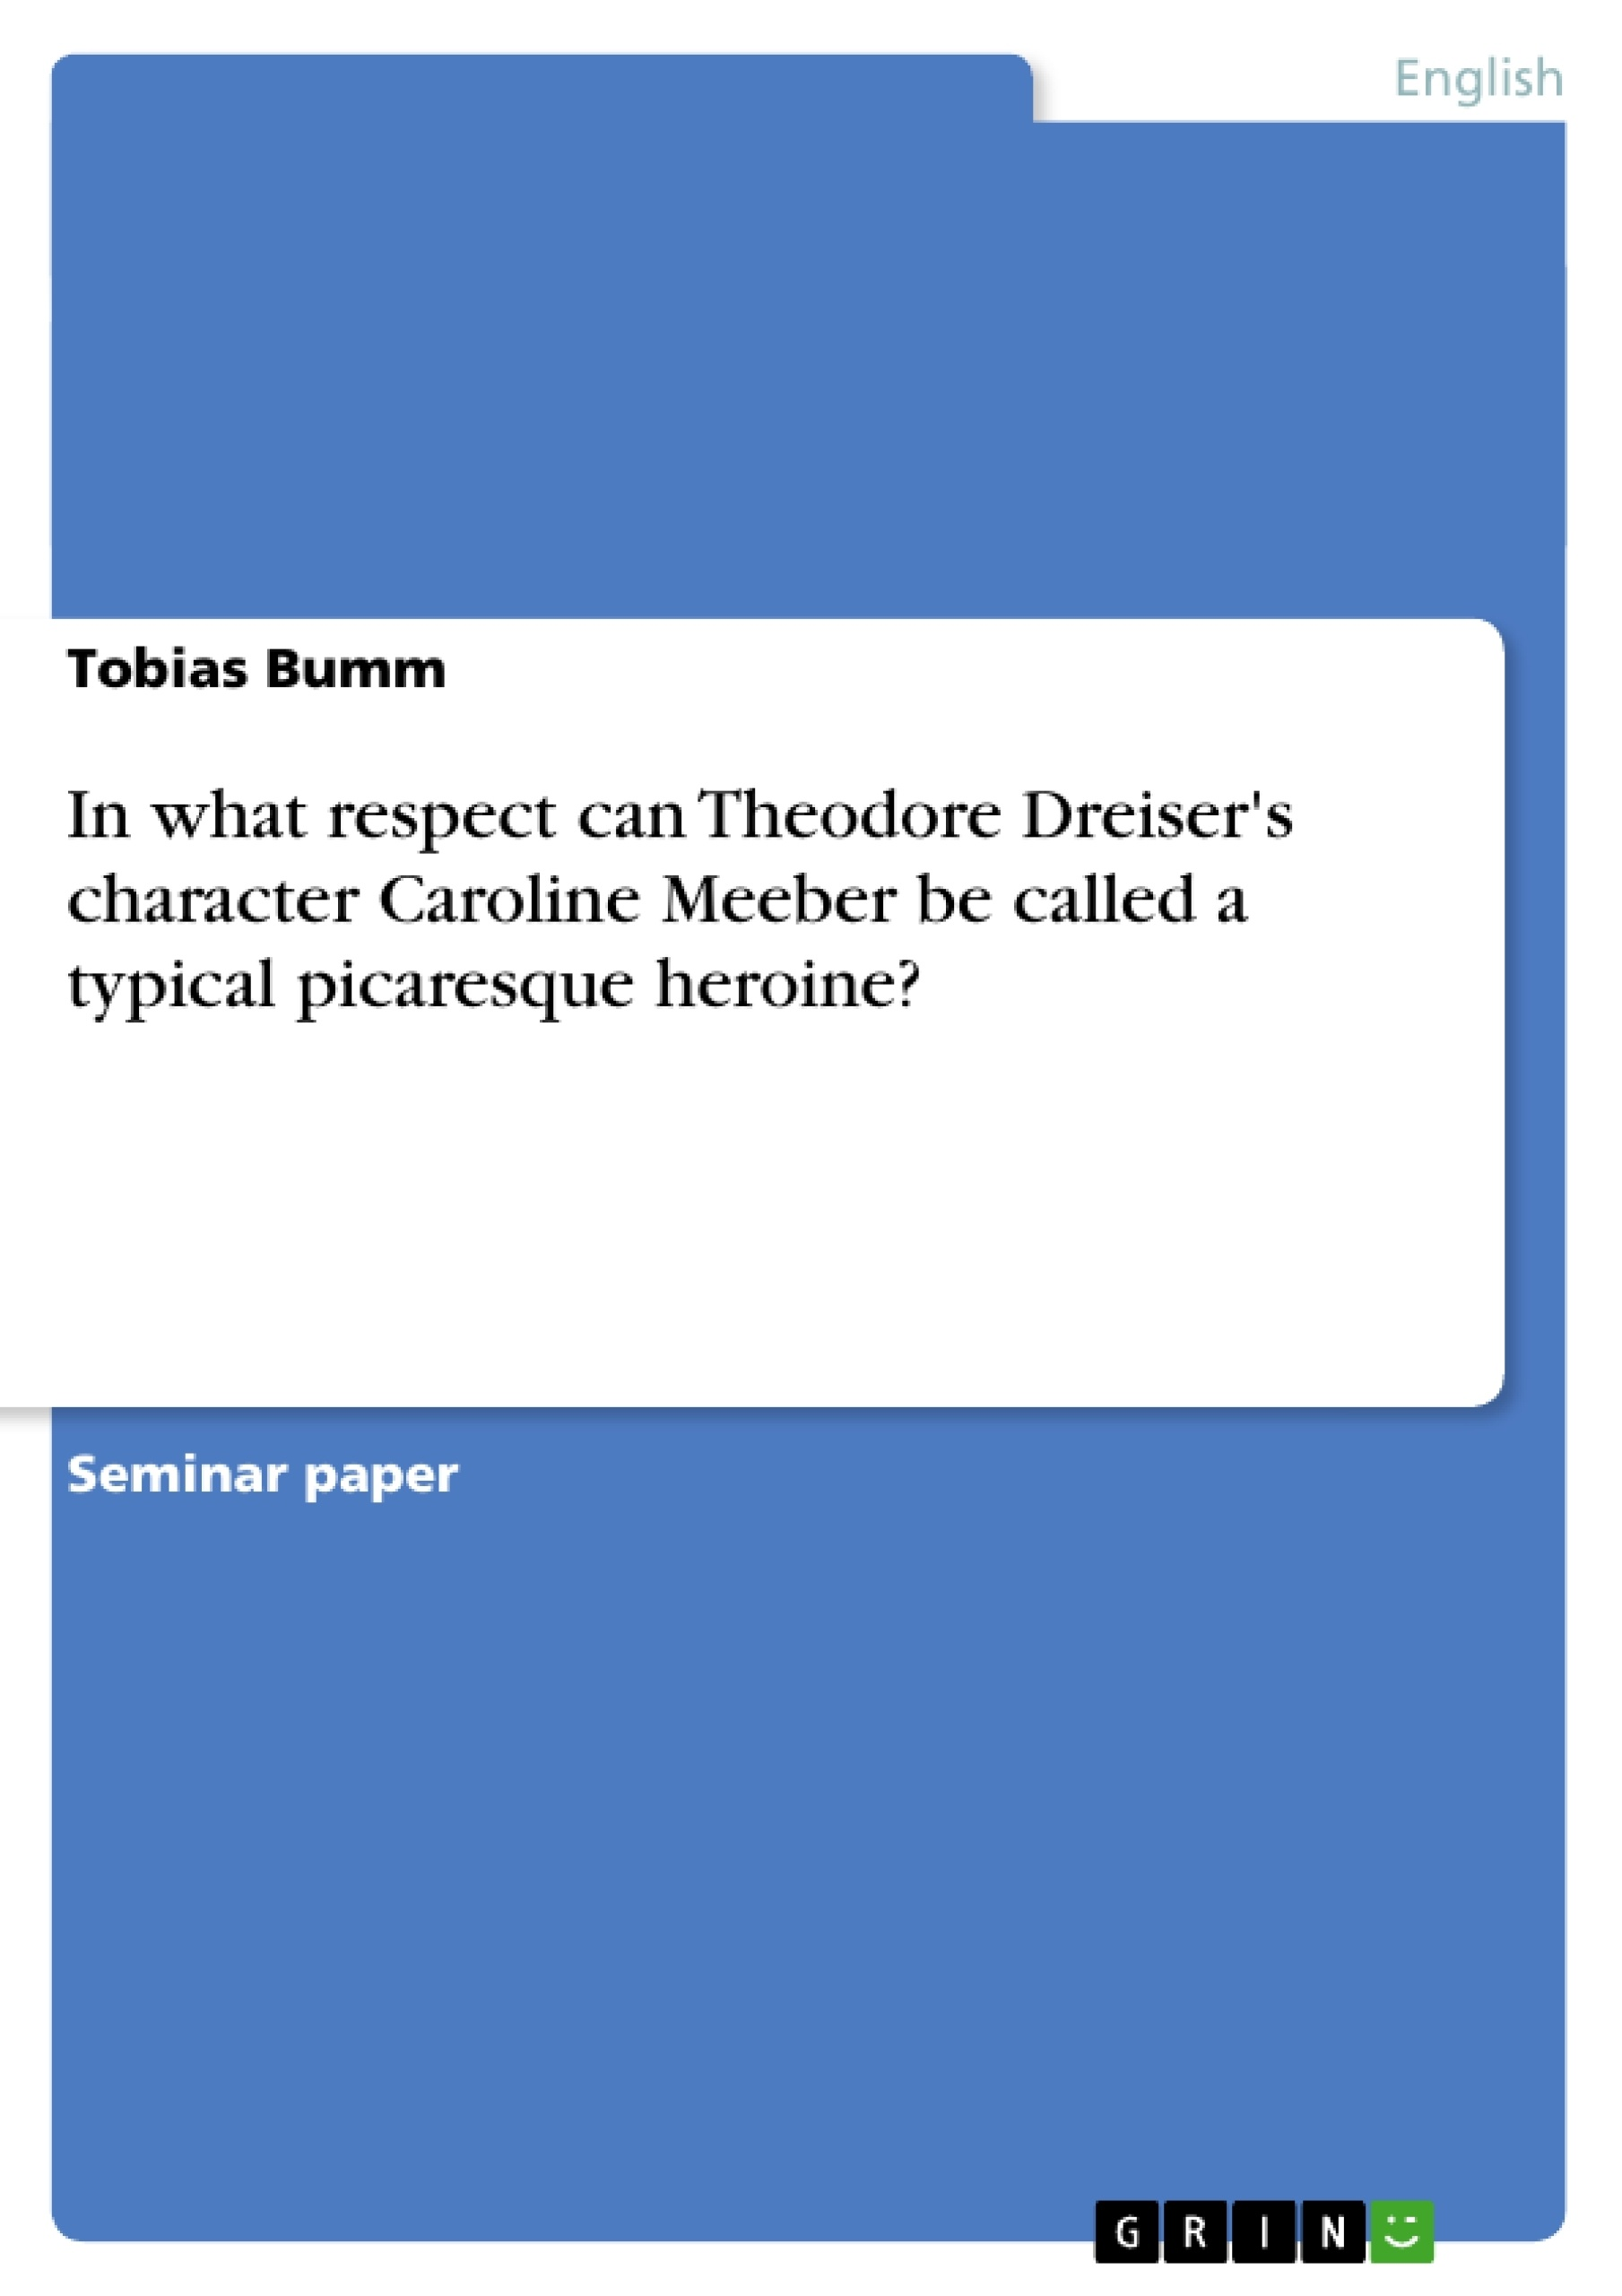 Title: In what respect  can Theodore Dreiser's character Caroline Meeber be called a typical picaresque heroine?